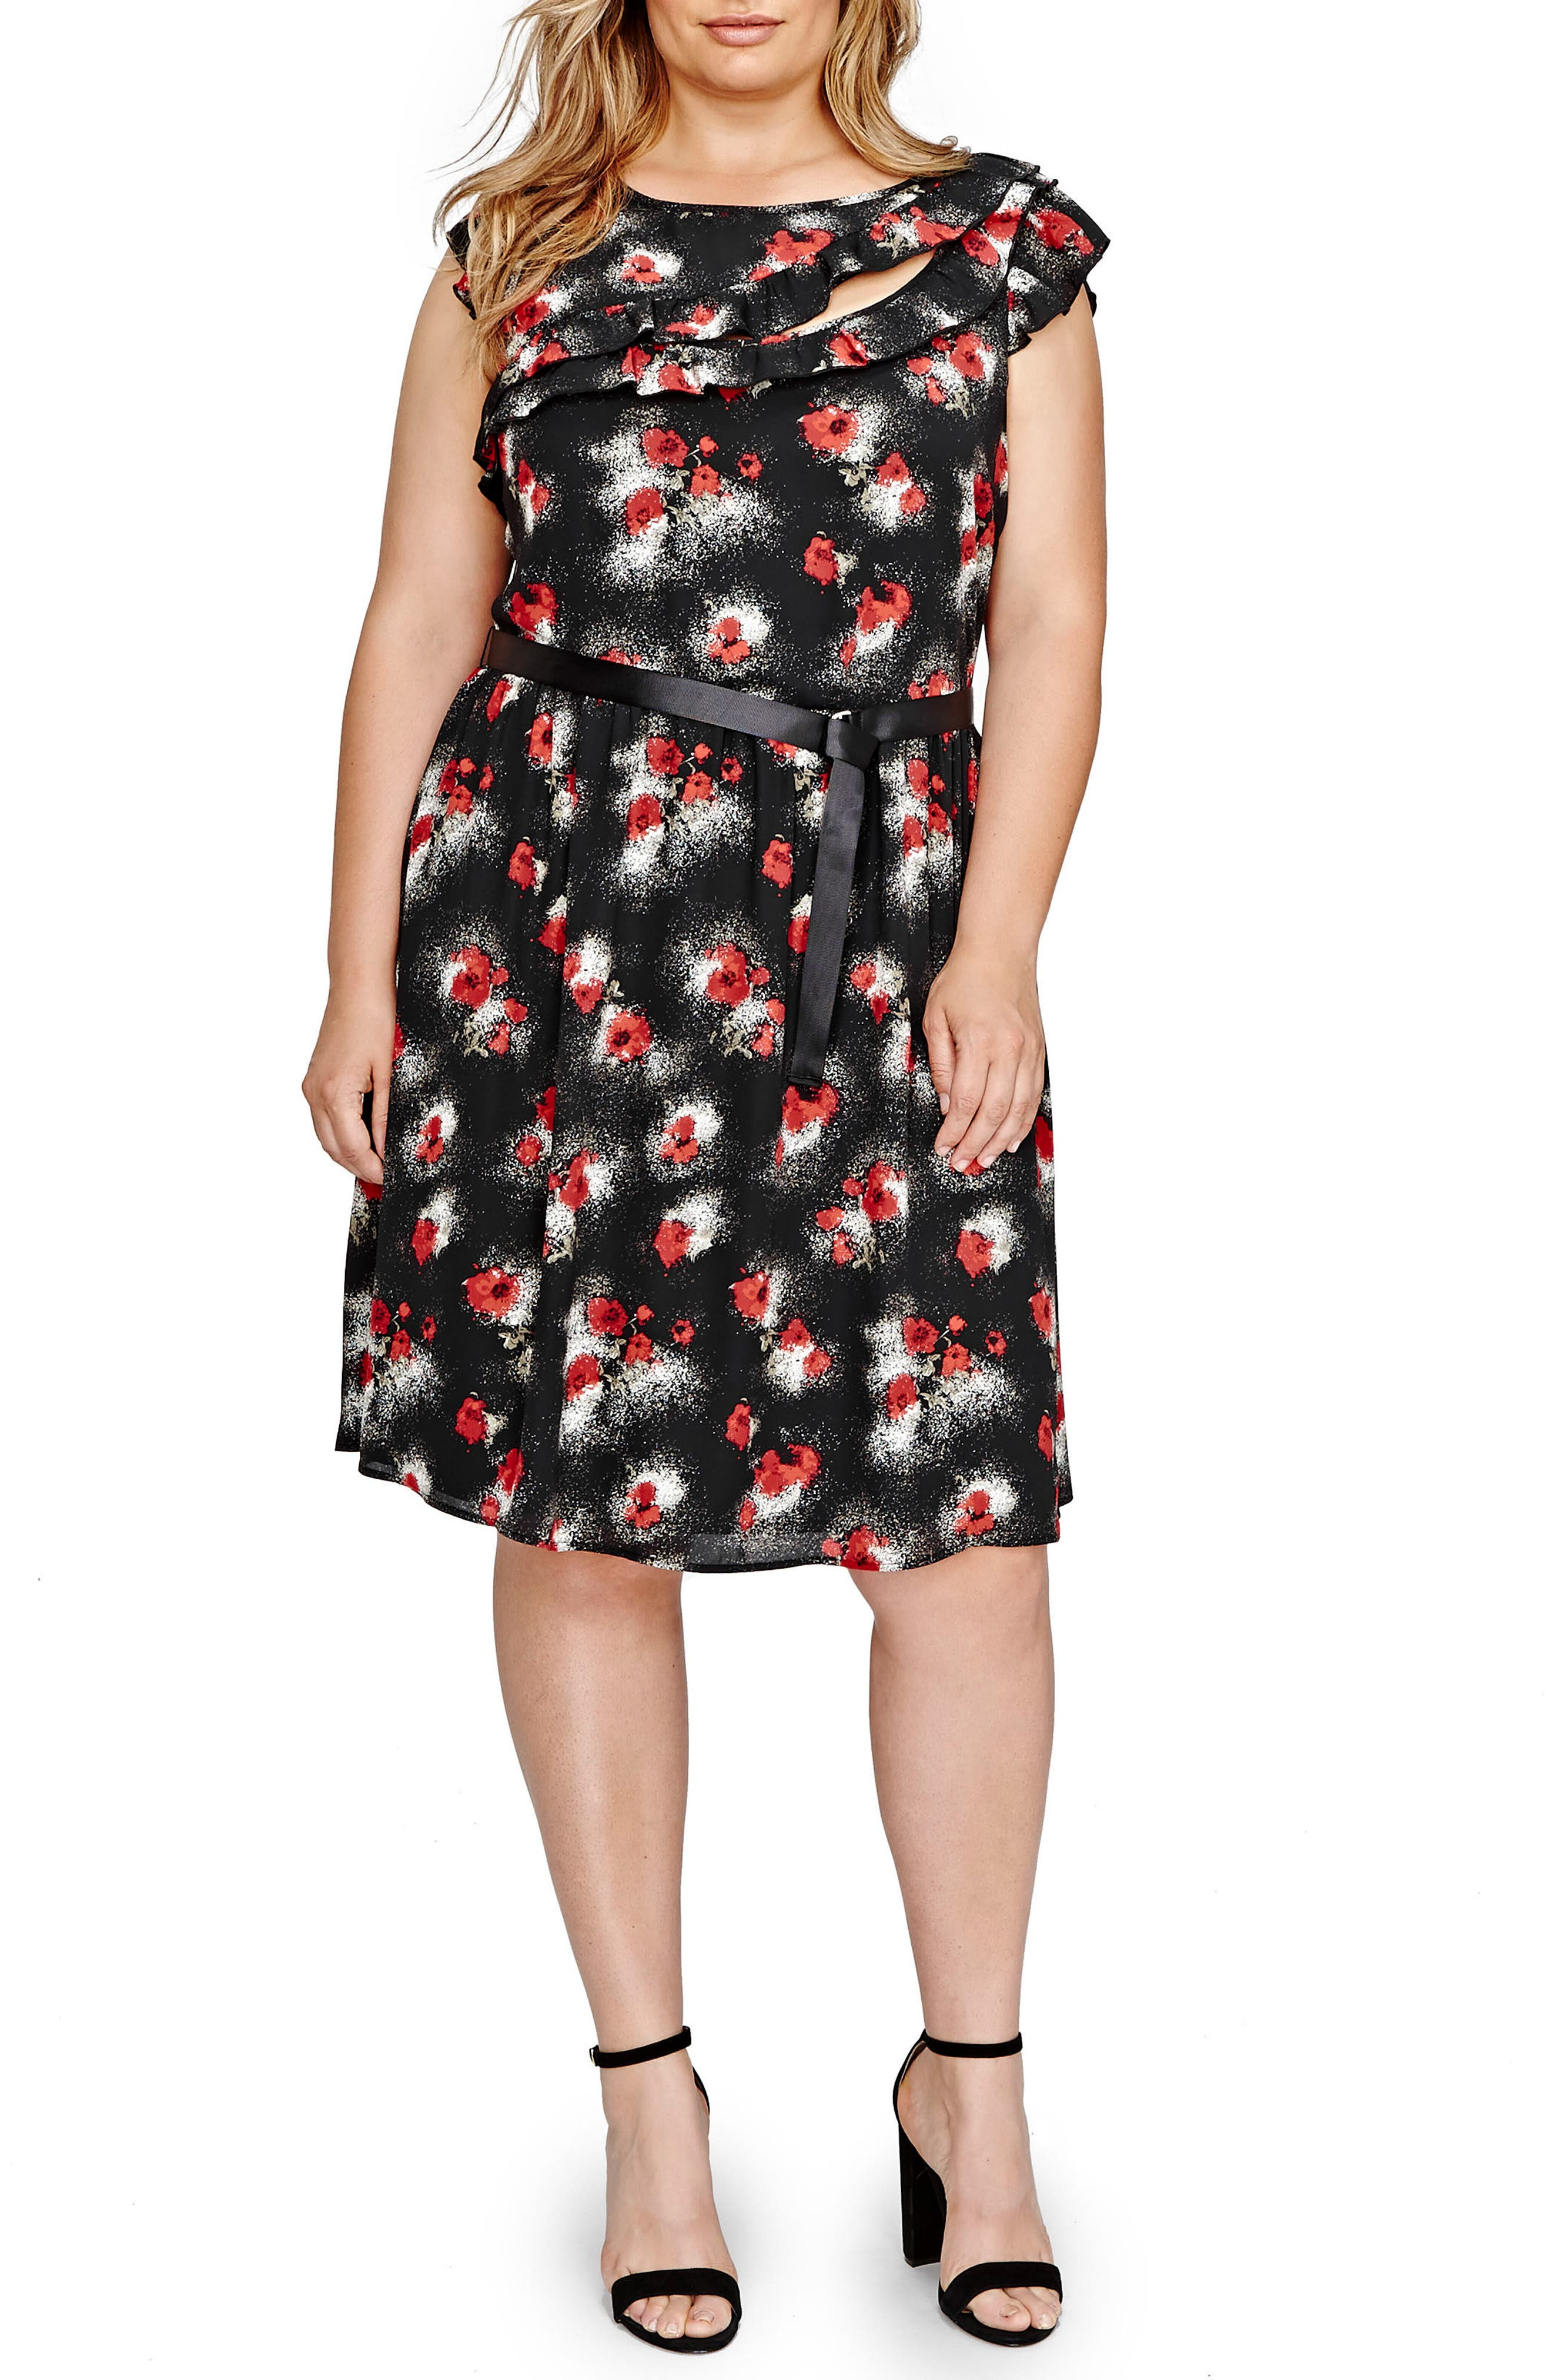 ADDITION ELLE LOVE AND LEGEND Floral Print Ruffled Fit & Flare Dress (Plus Size)